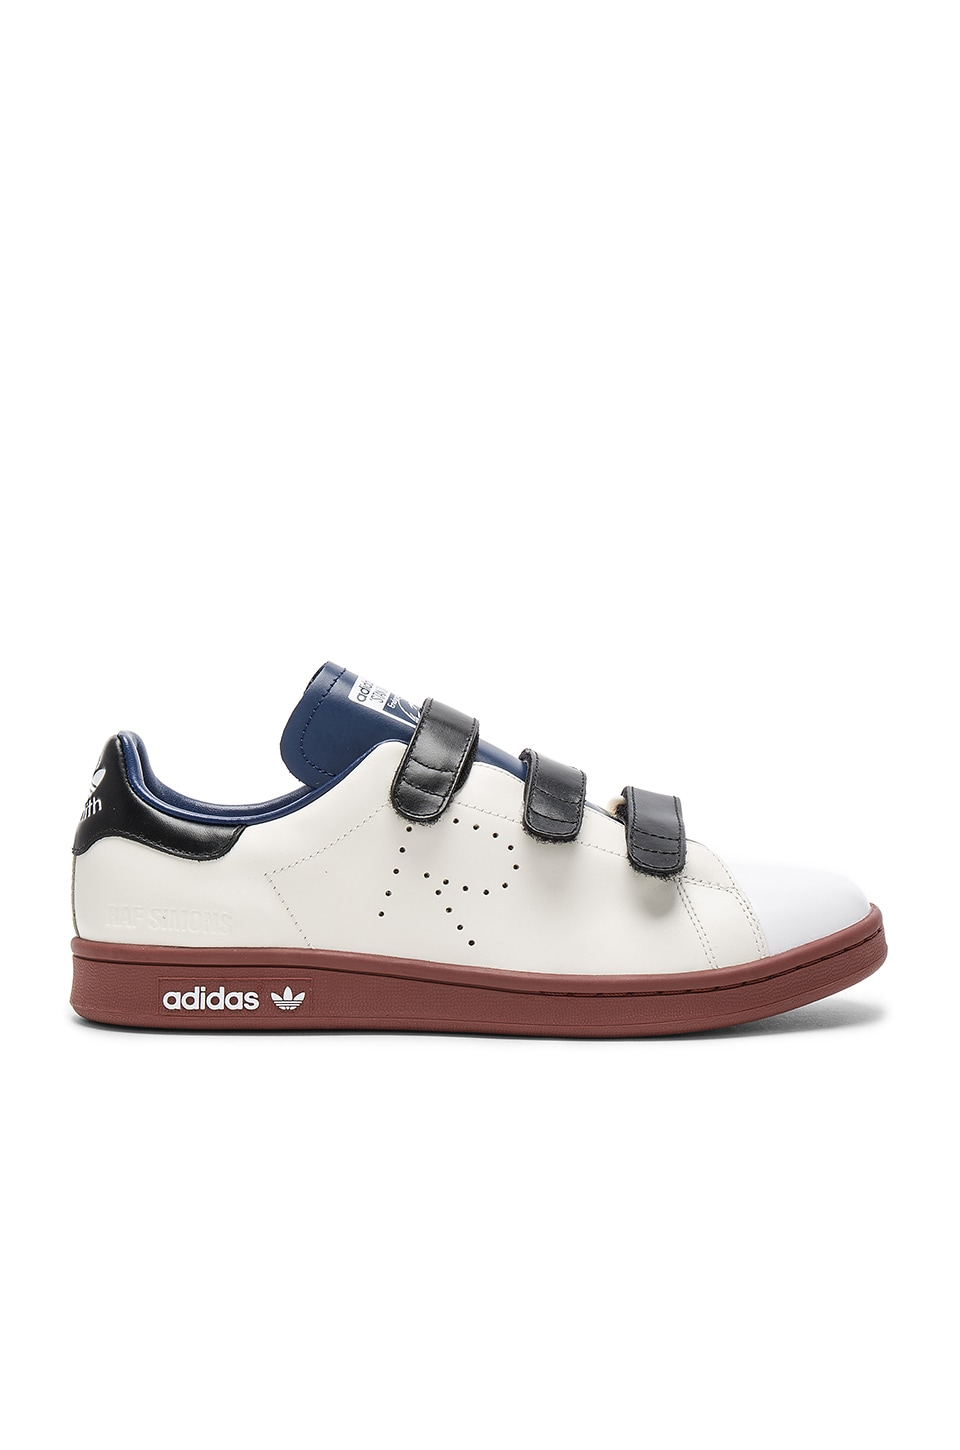 factory authentic hot products cheap prices RS Stan Smith CF